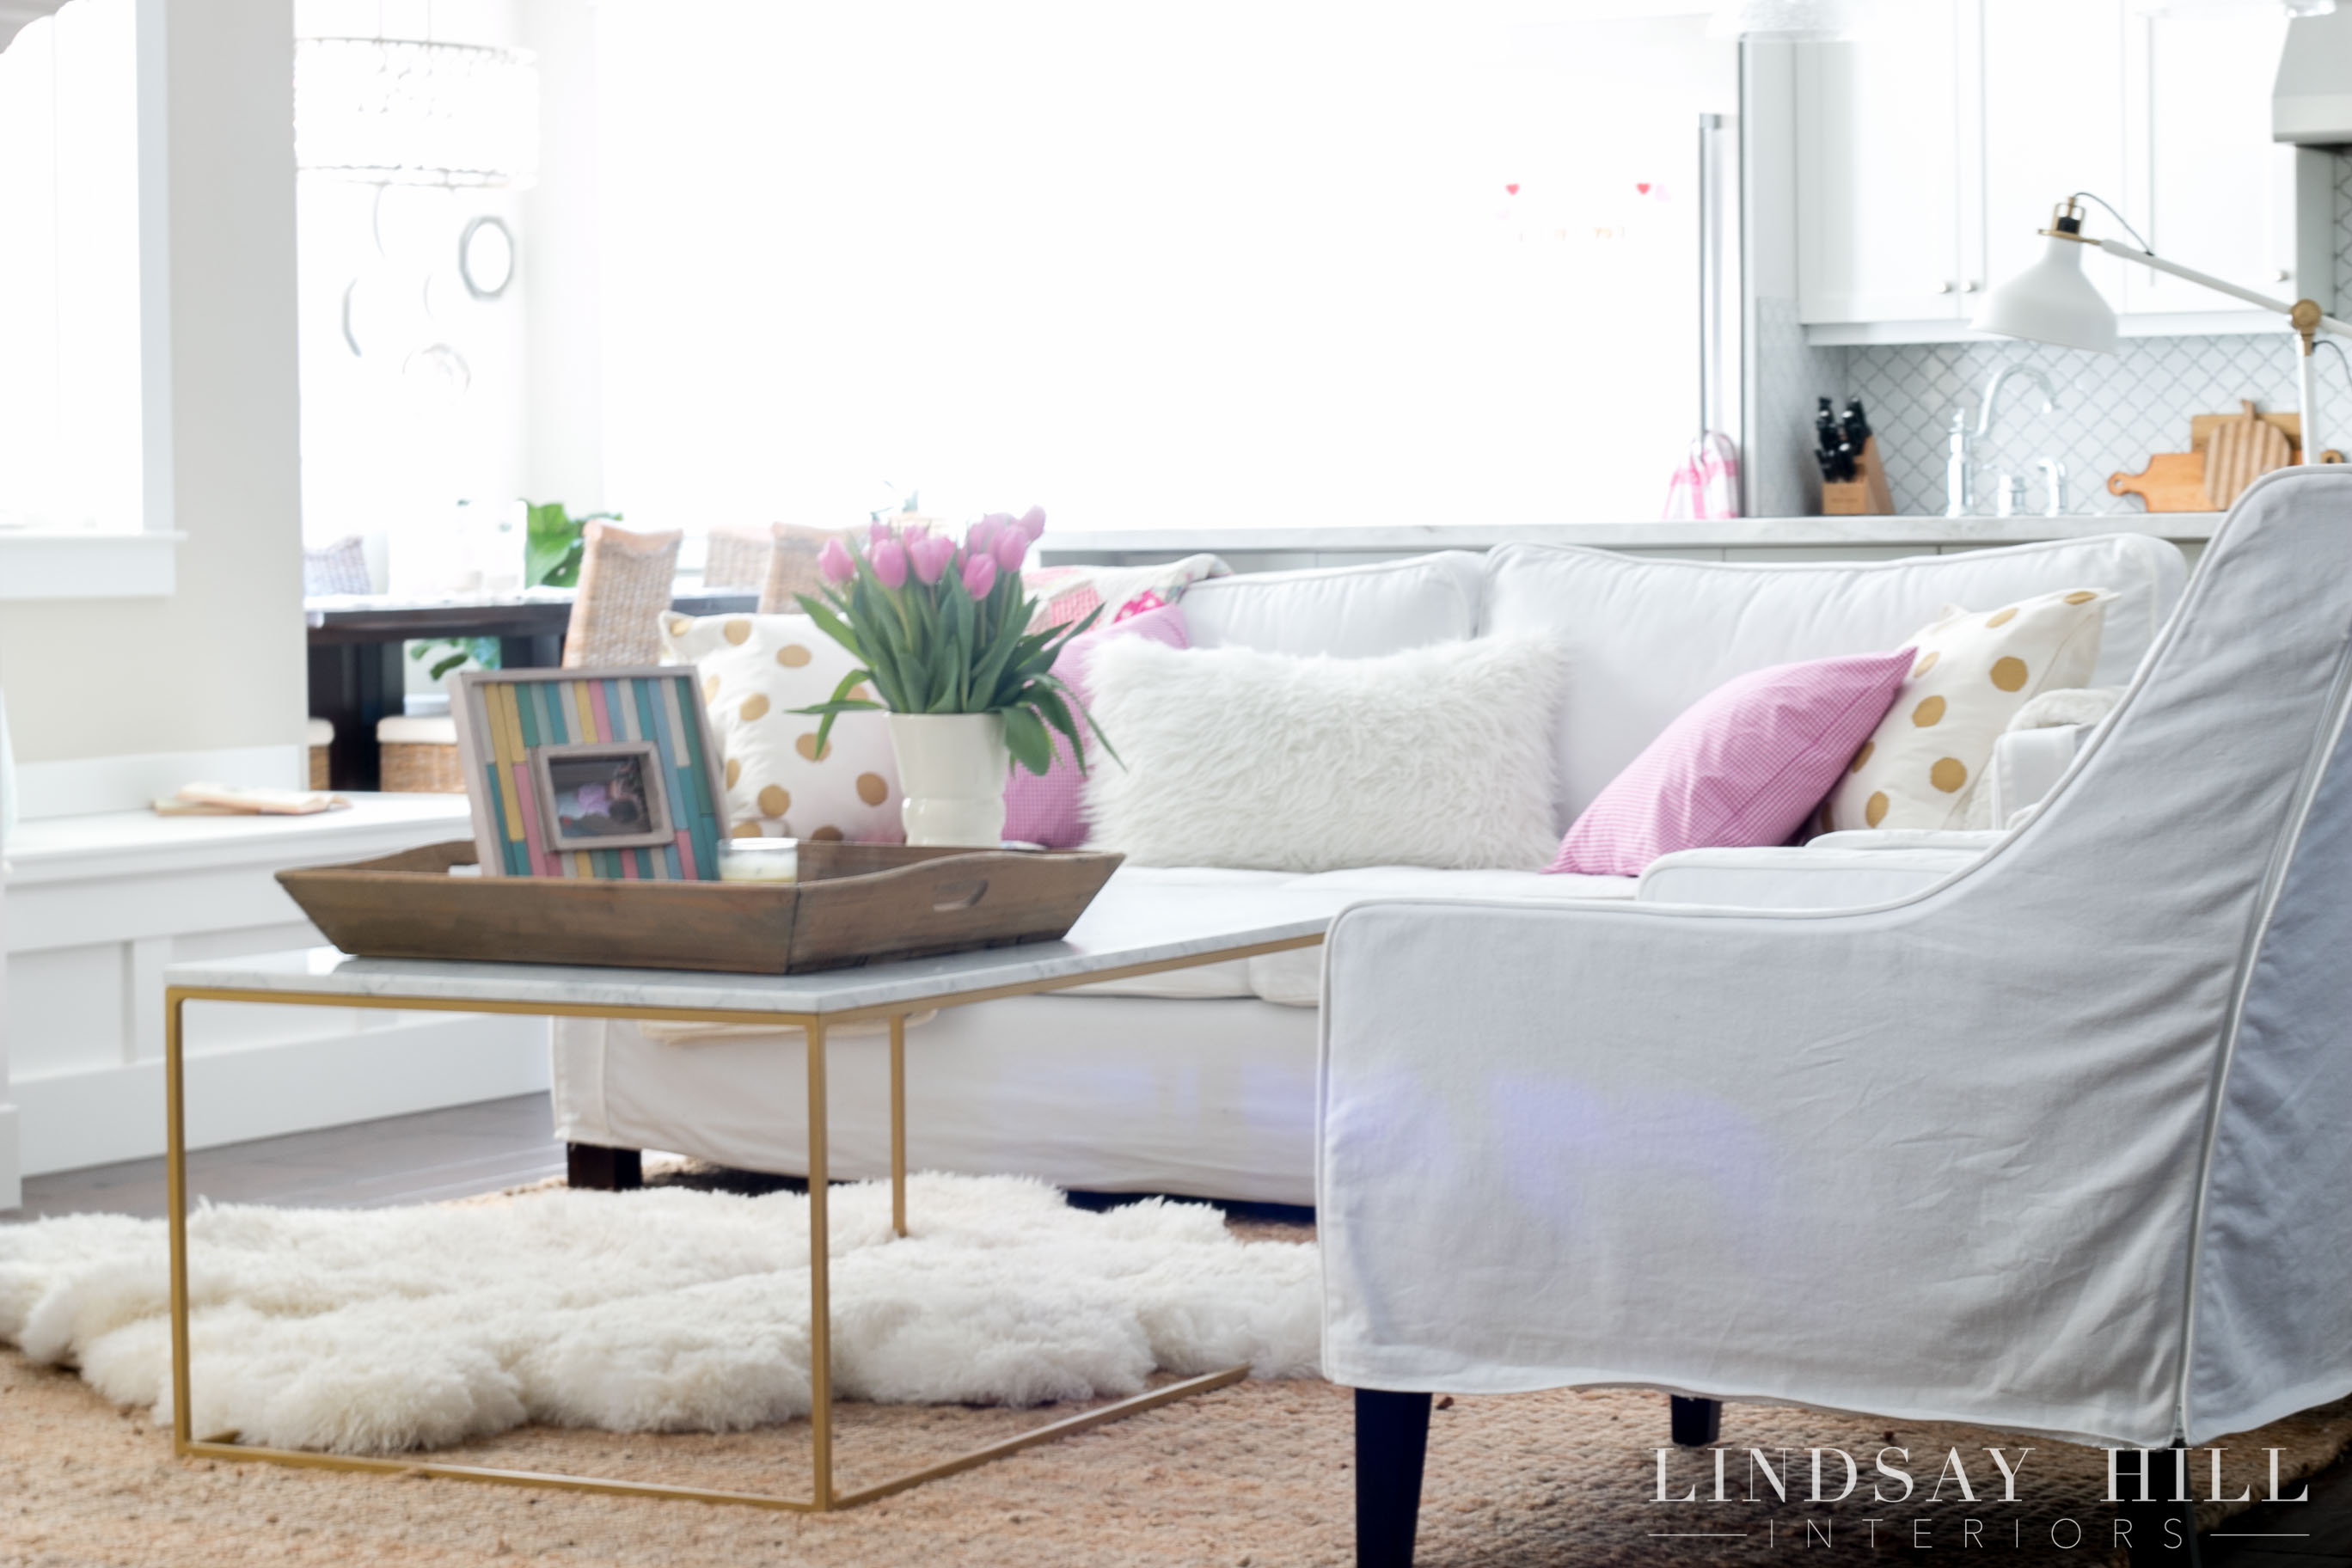 Lindsay Hill Interiors Simple Valentineu0027s Day Decor Living Room